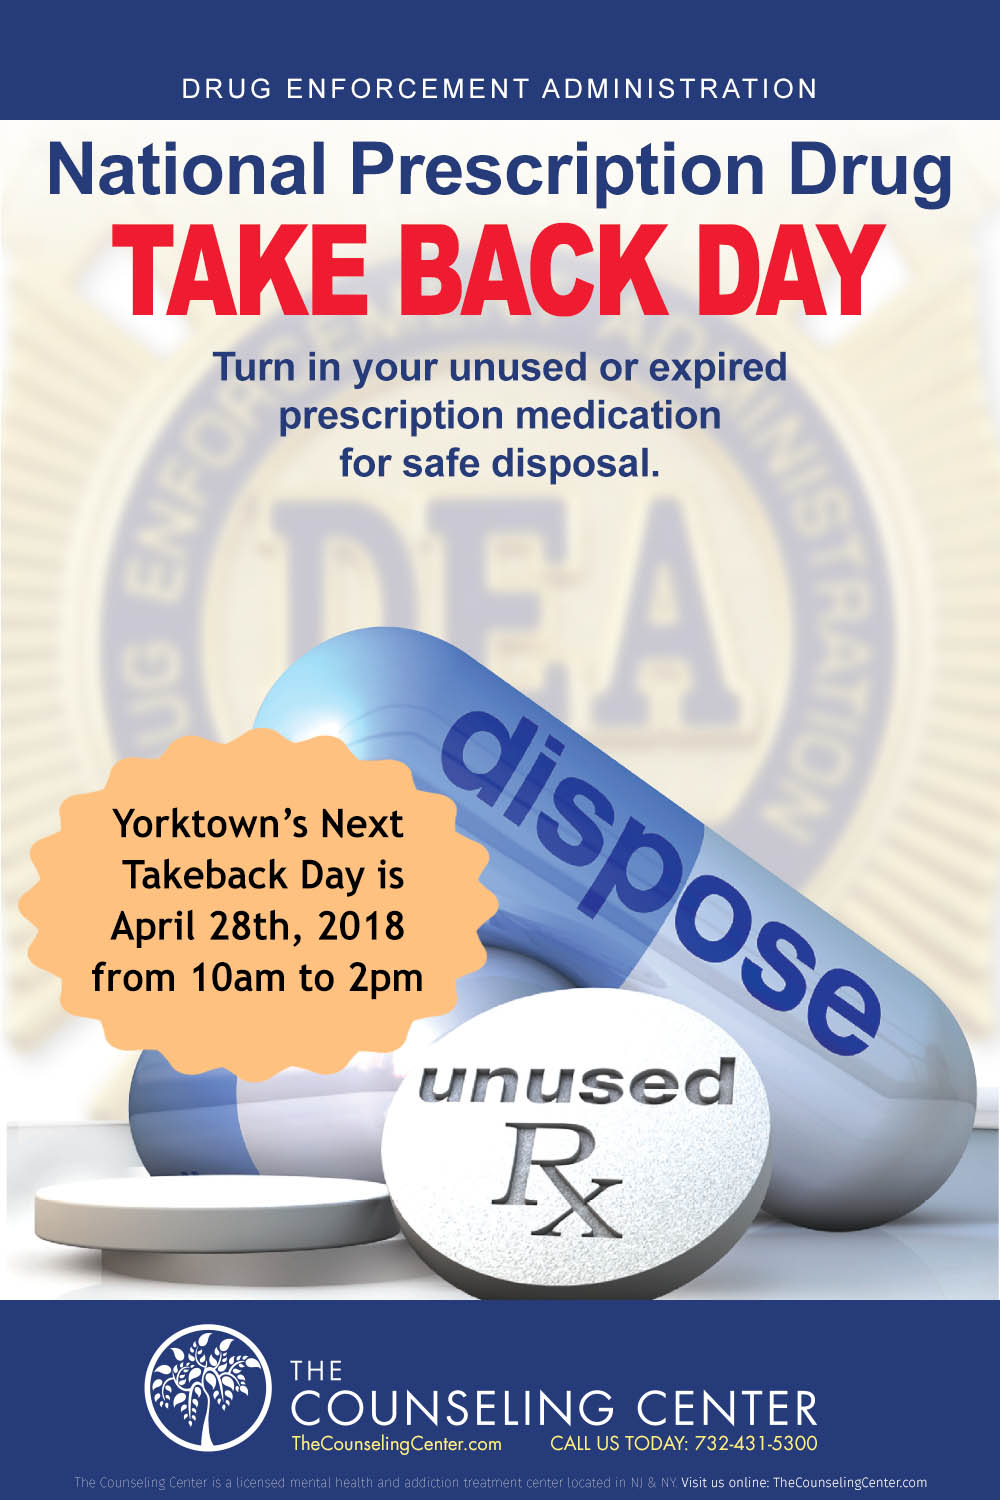 Yorktown Counseling Center encourages you to properly dispose of unused and unneeded medications.